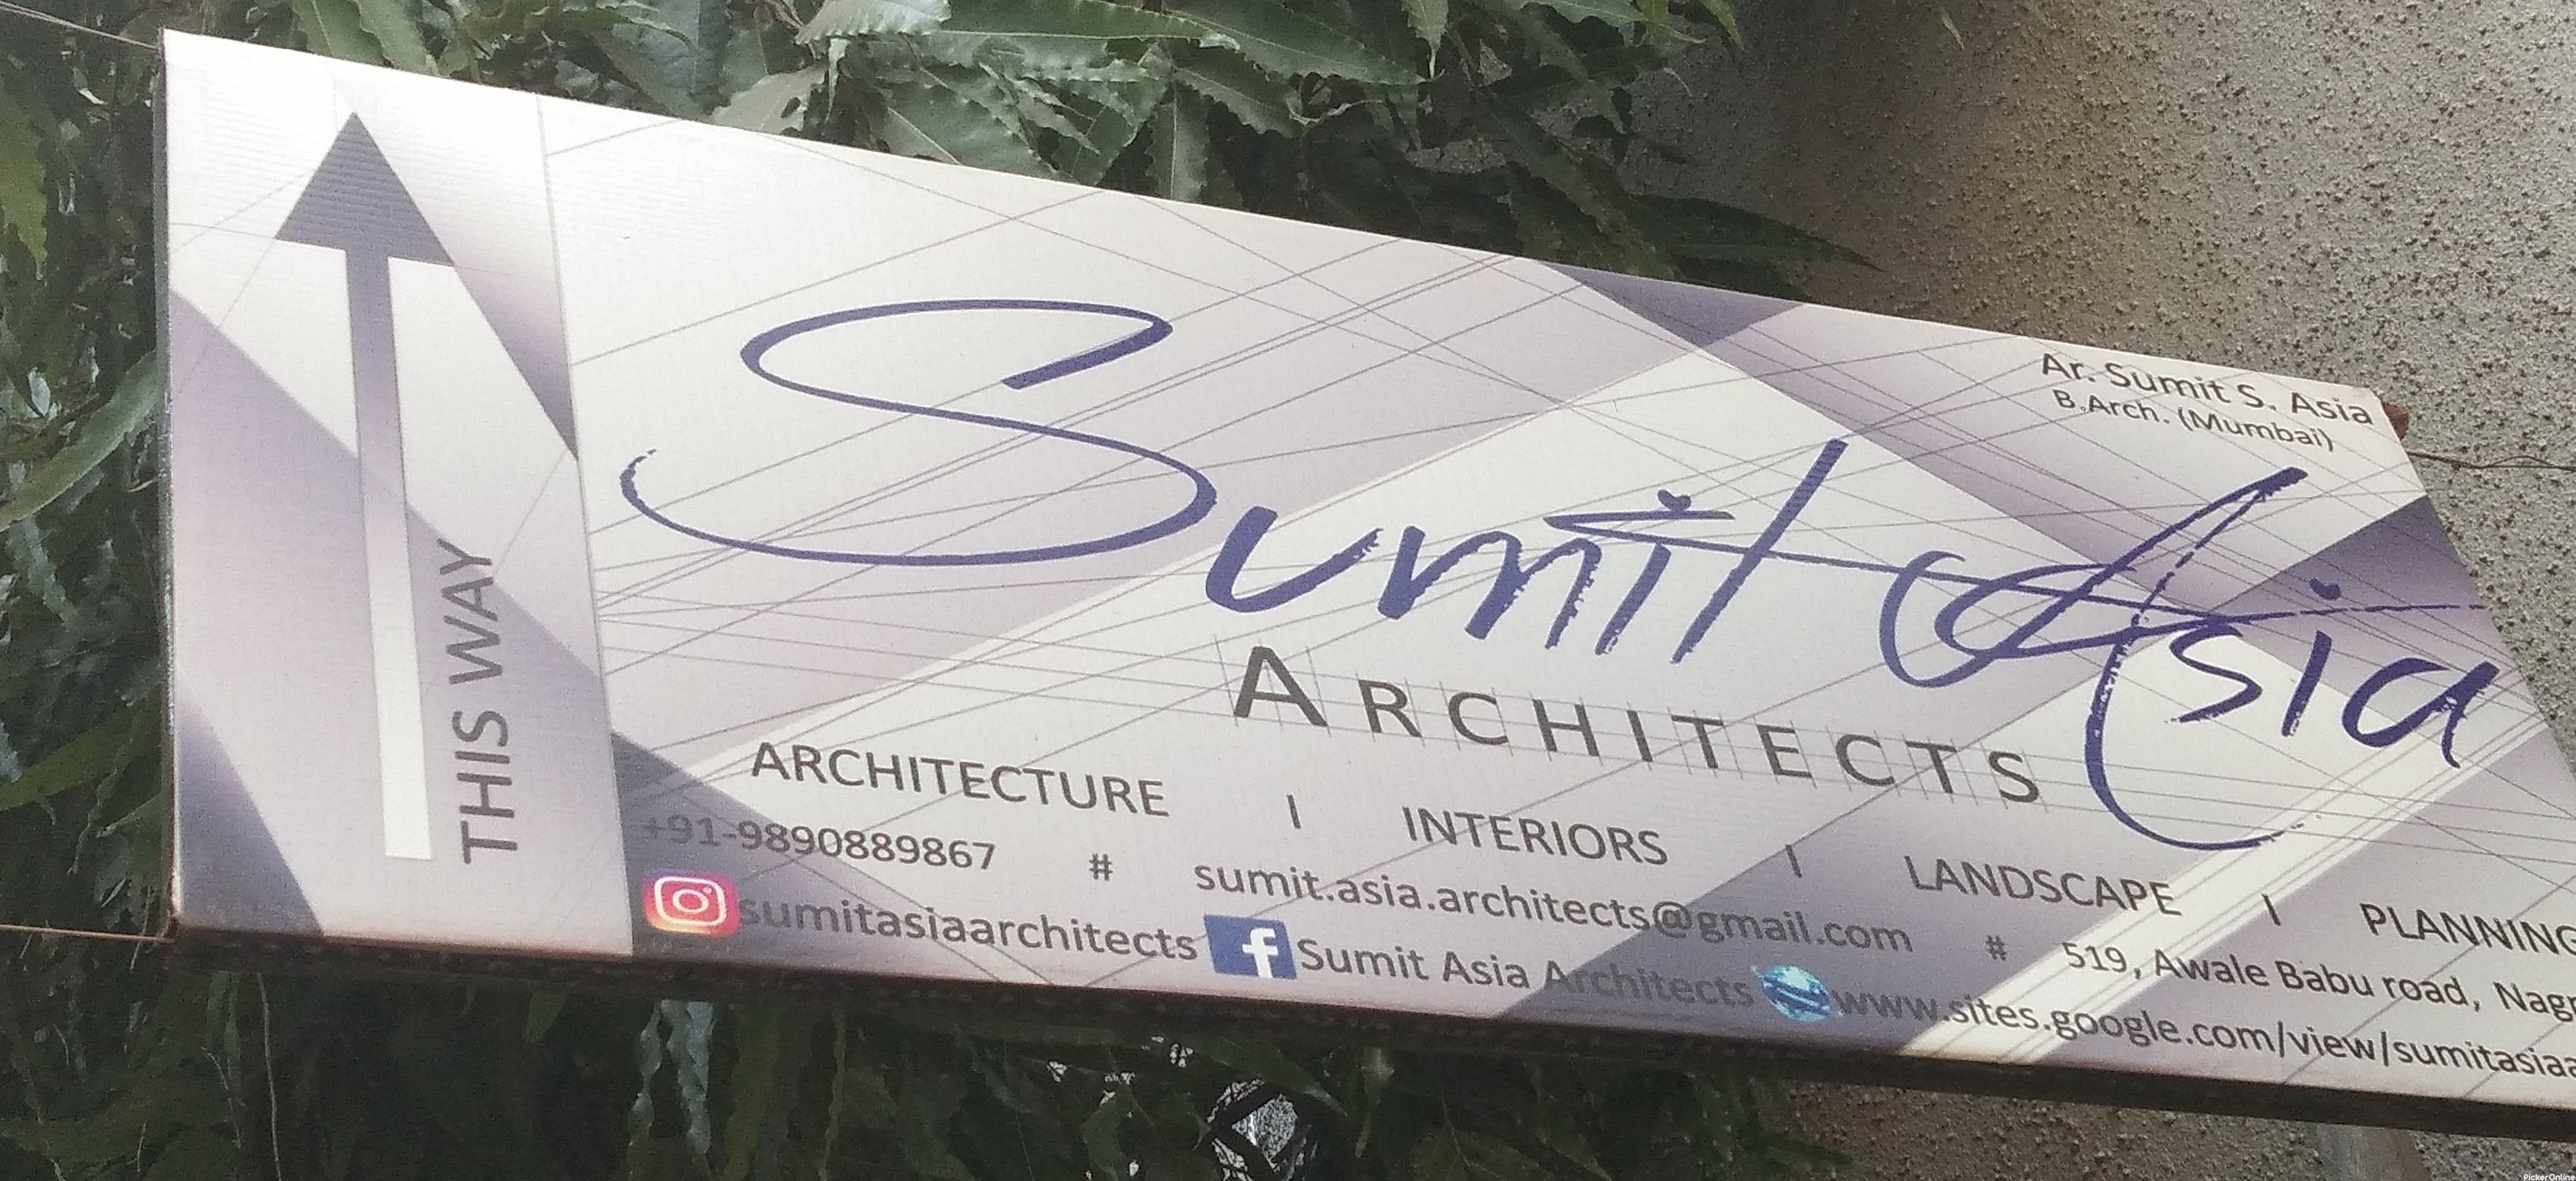 Sumit Asia Architect in Dr  Ambedkar Marg, Nagpur | Picker Online